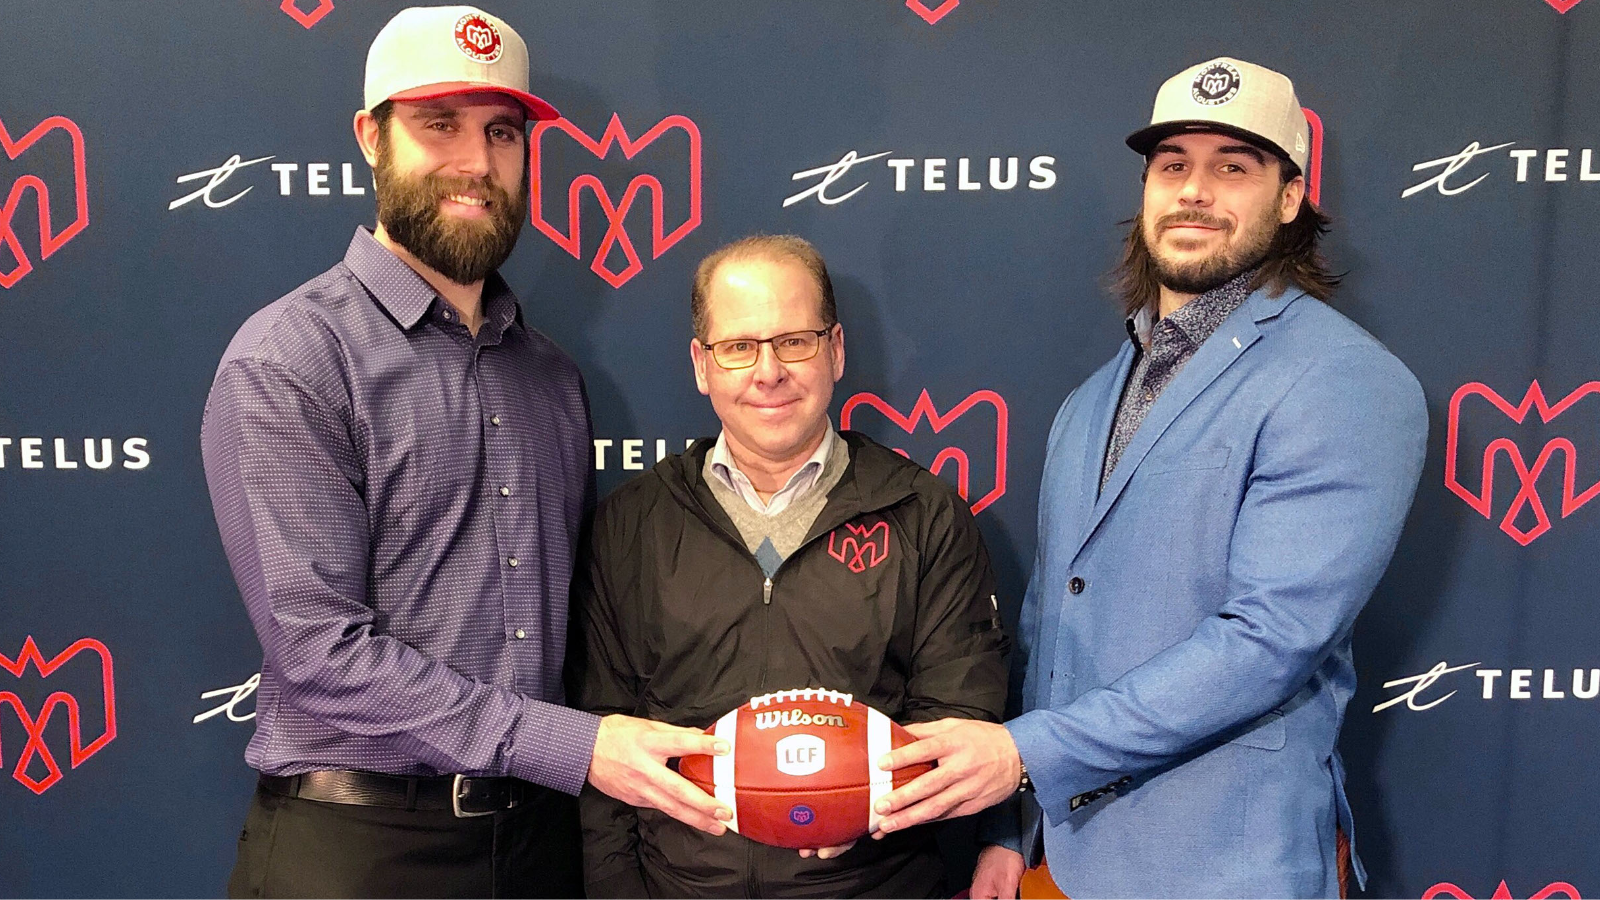 Press conference of David Ménard, Frederic Chagnon and Danny Maciocia - Montreal Alouettes